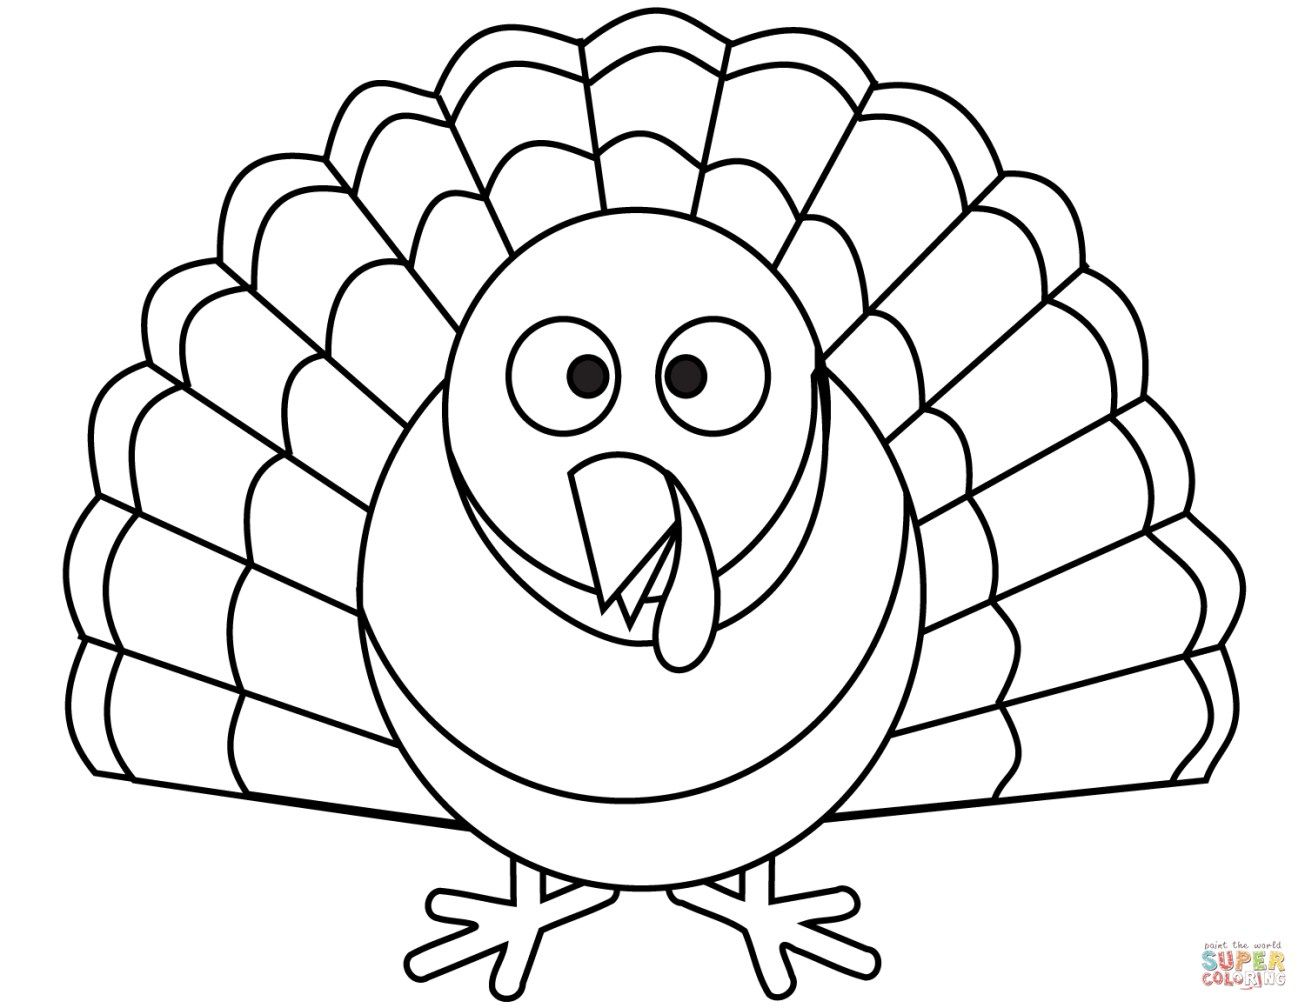 22 Marvelous Picture Of Turkey Coloring Pages Davemelillo Com Turkey Coloring Pages Thanksgiving Coloring Pages Free Thanksgiving Coloring Pages